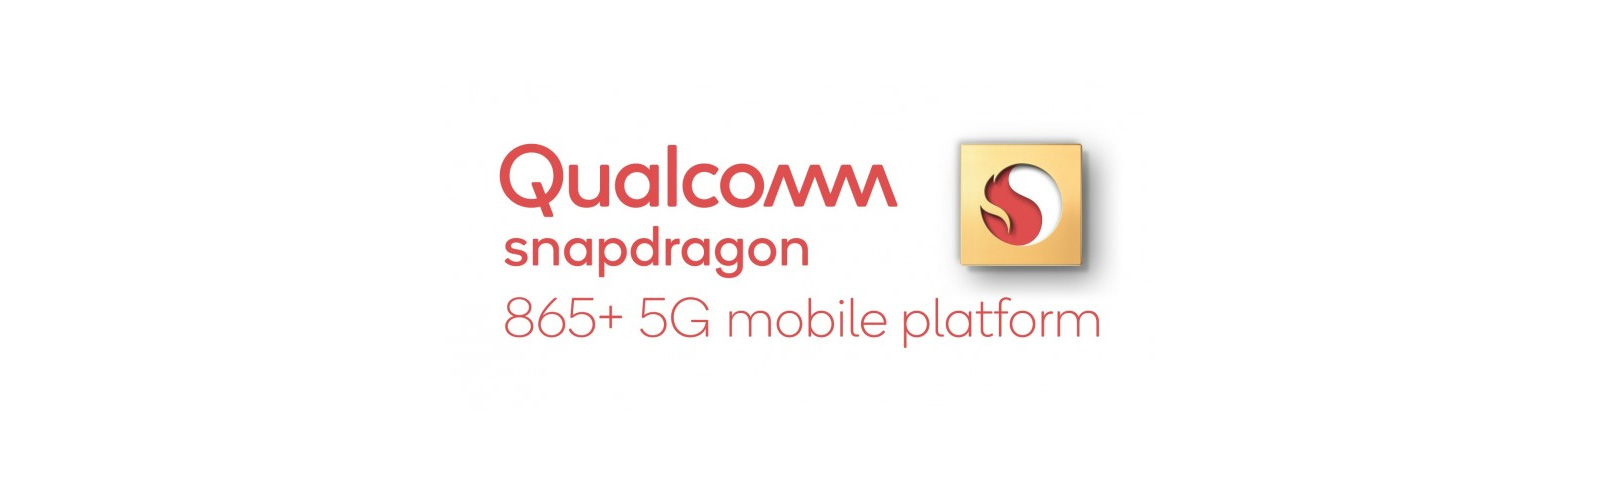 Qualcomm Snapdragon 865 Plus - the first chipset to surpass the 3GHz CPU clock rate limit